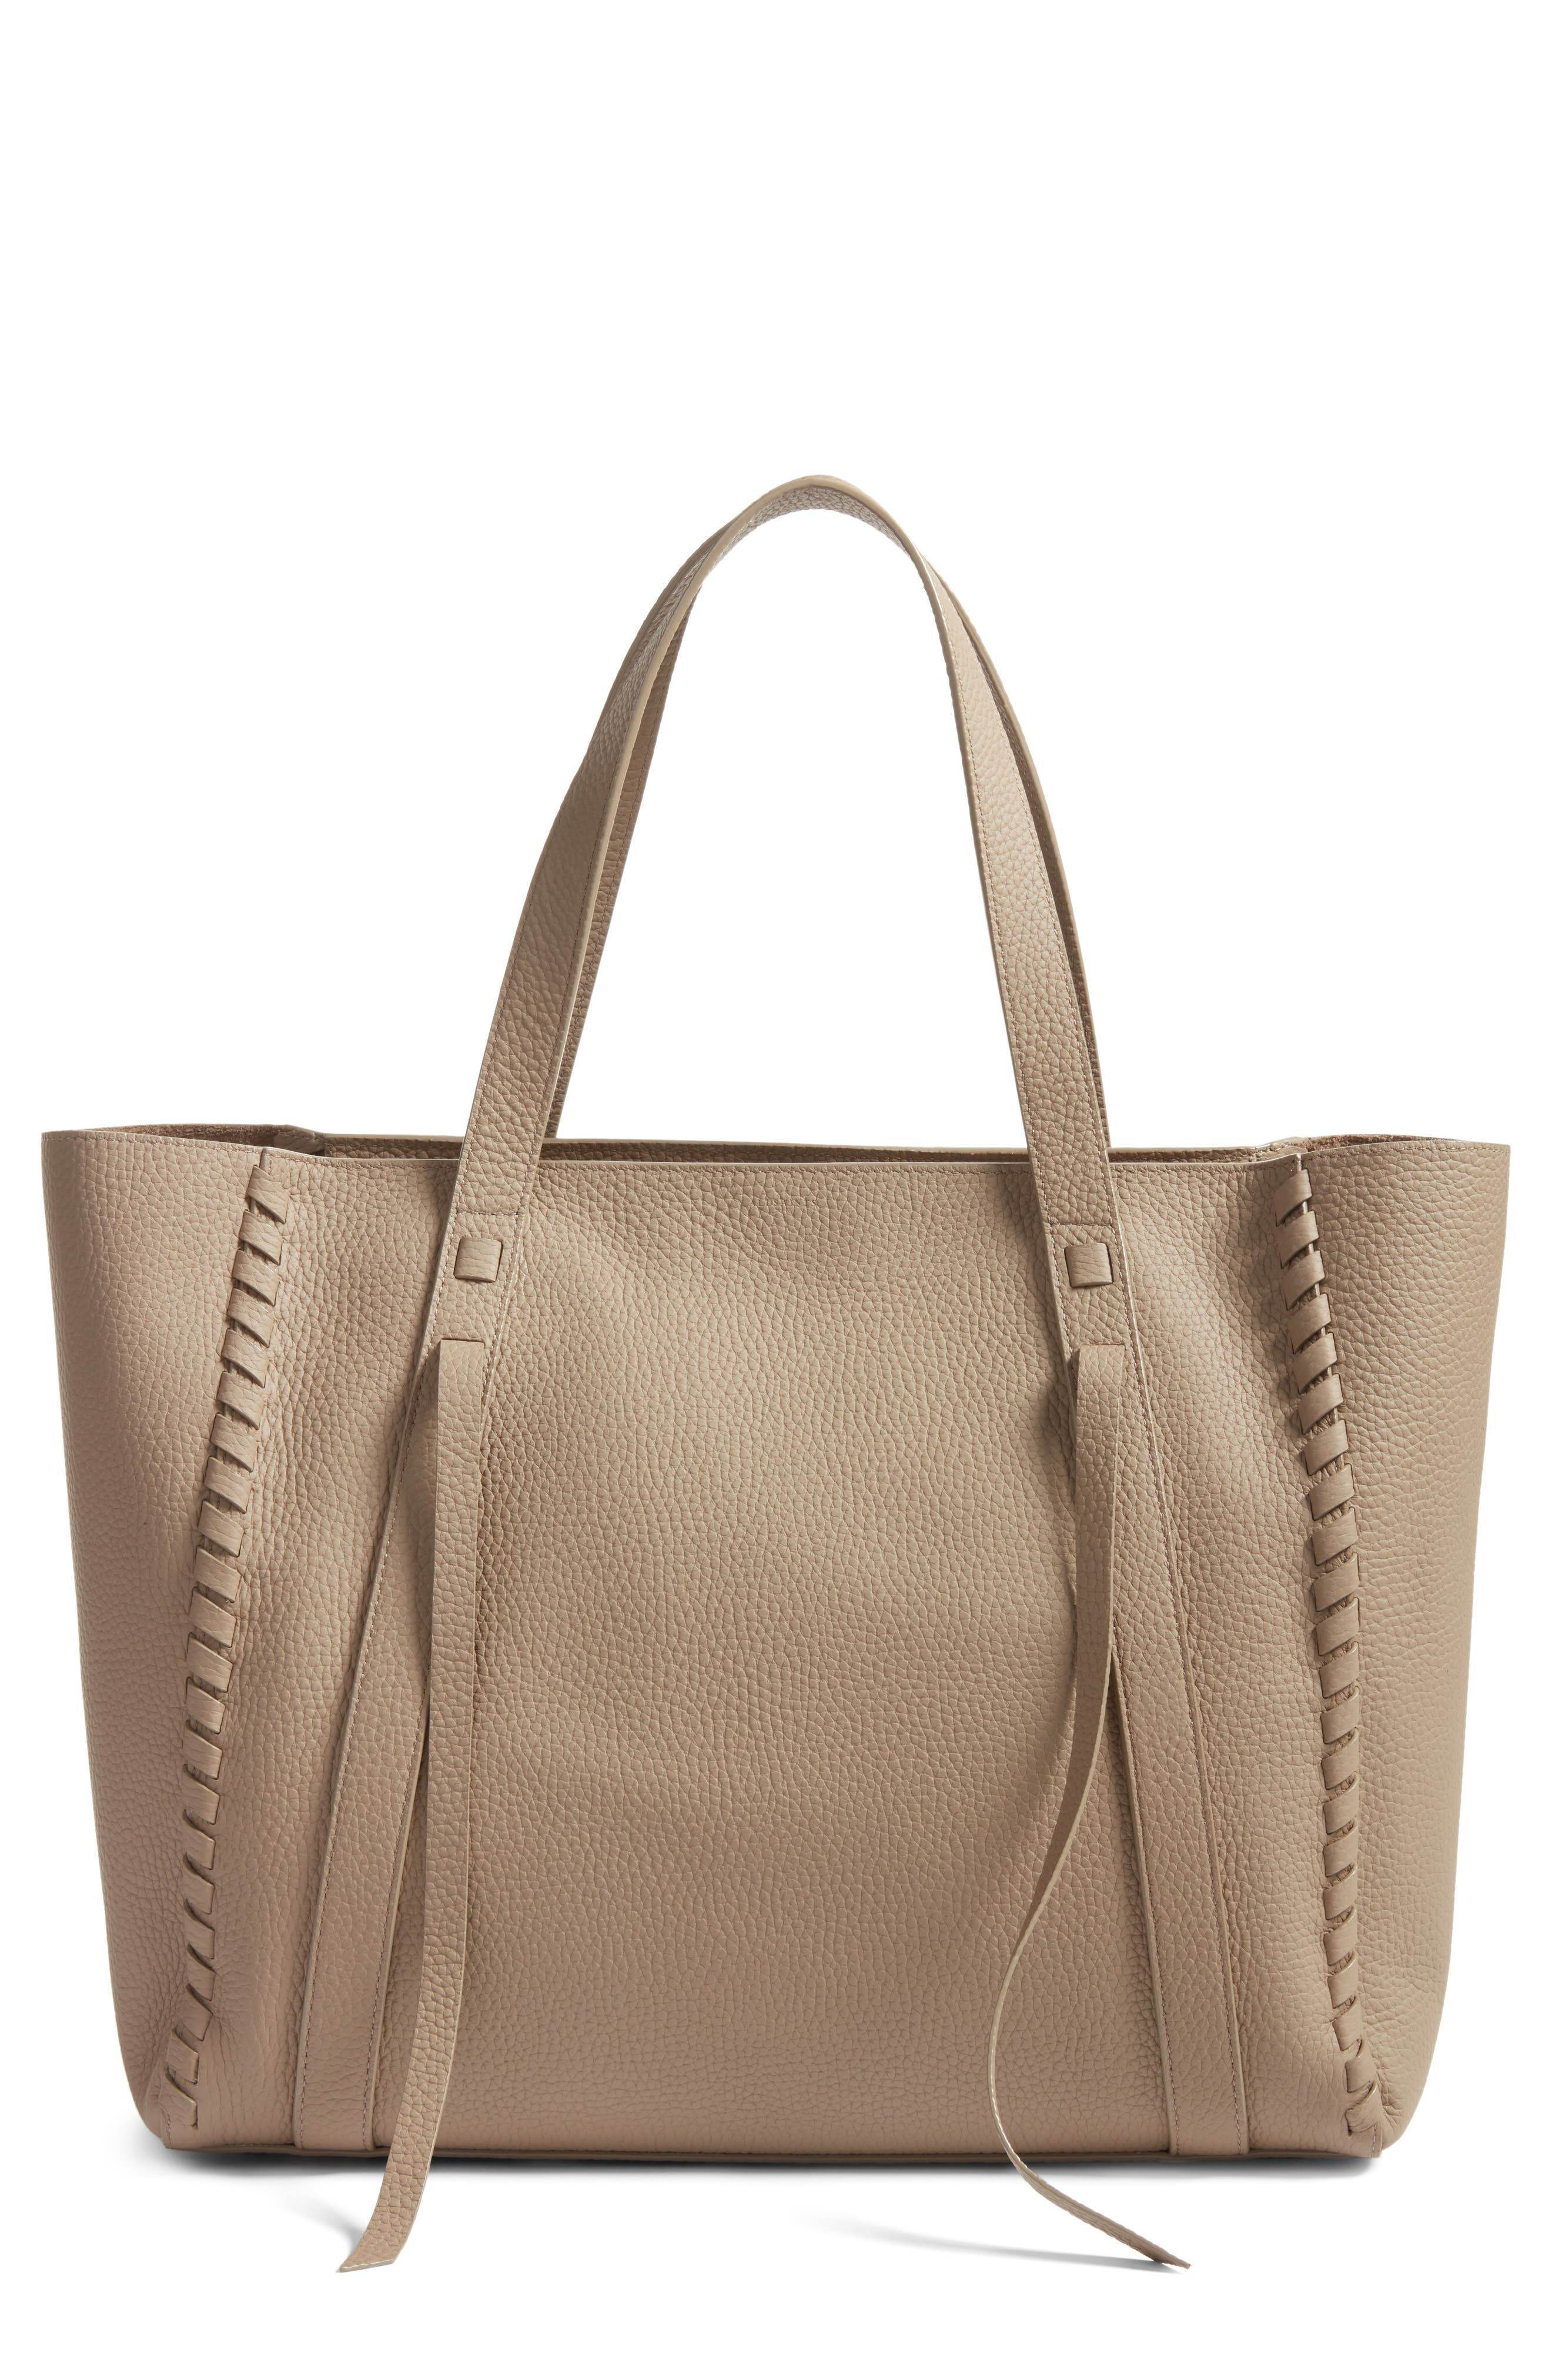 Alternate Image 1 Selected - ALLSAINTS Raye Leather Tote (Nordstrom Exclusive)